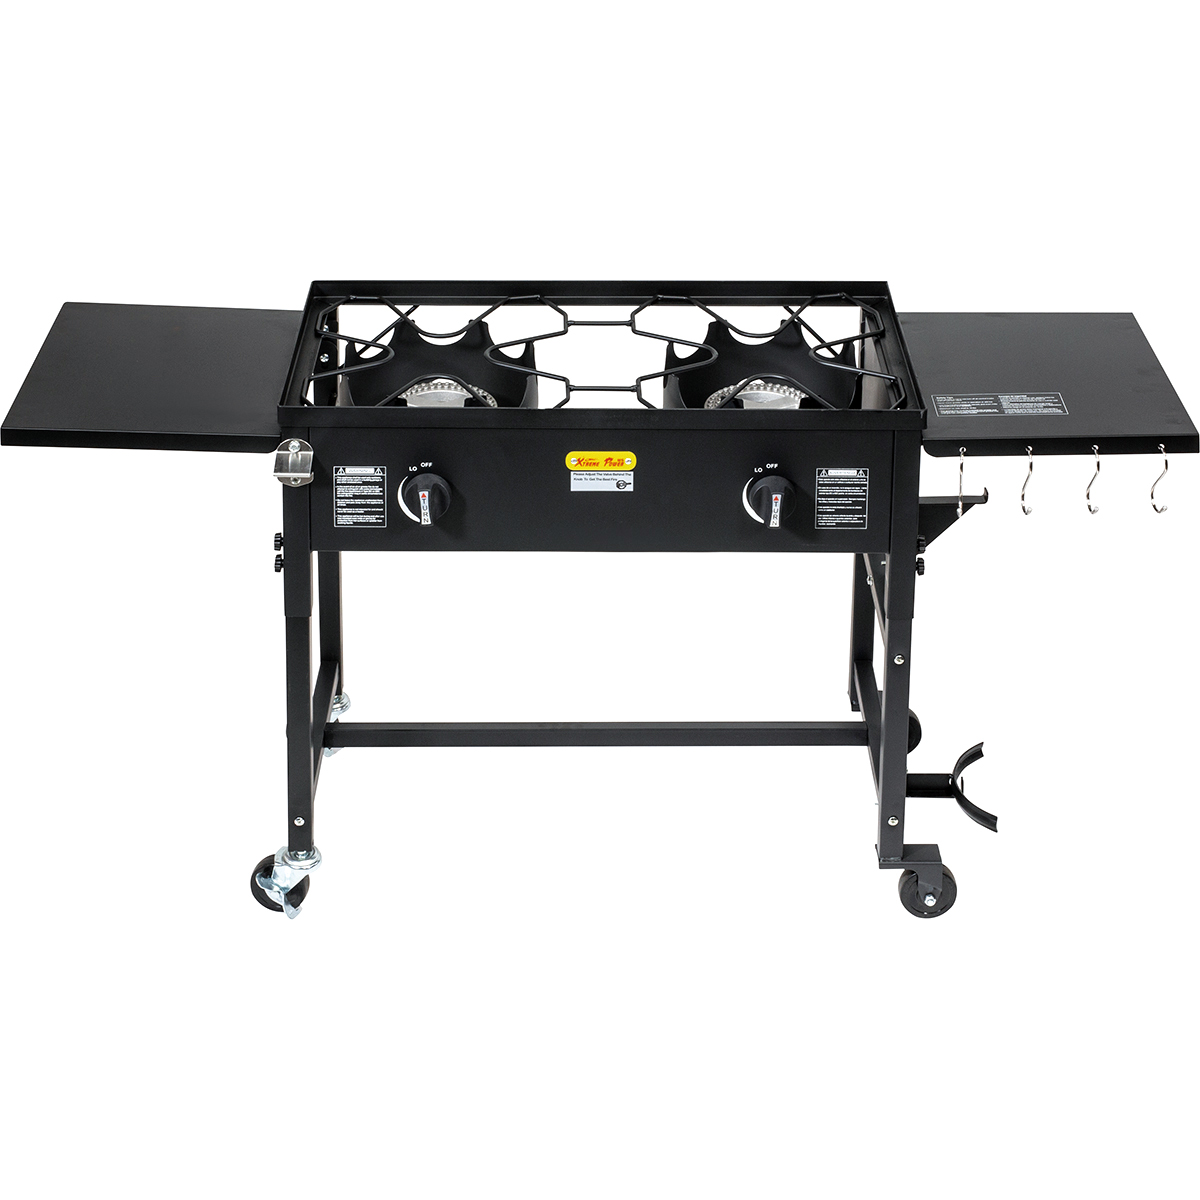 Double Burner Stove Cooking Station Outdoor Camping Propane BBQ Grill 58000 BTU